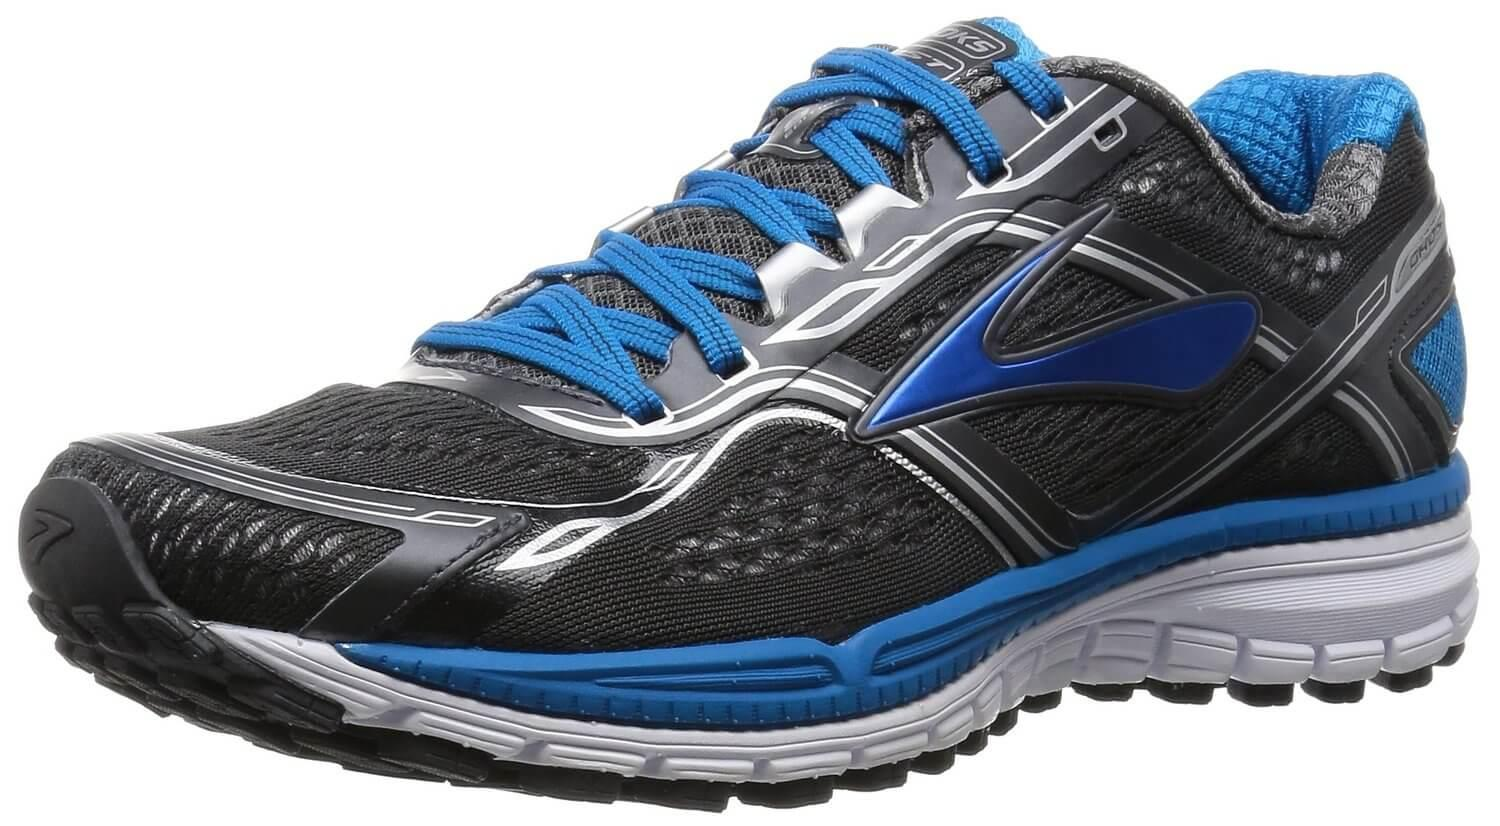 The Brooks Ghost 8 is the eighth iteration of the Brooks Ghost footwear line.